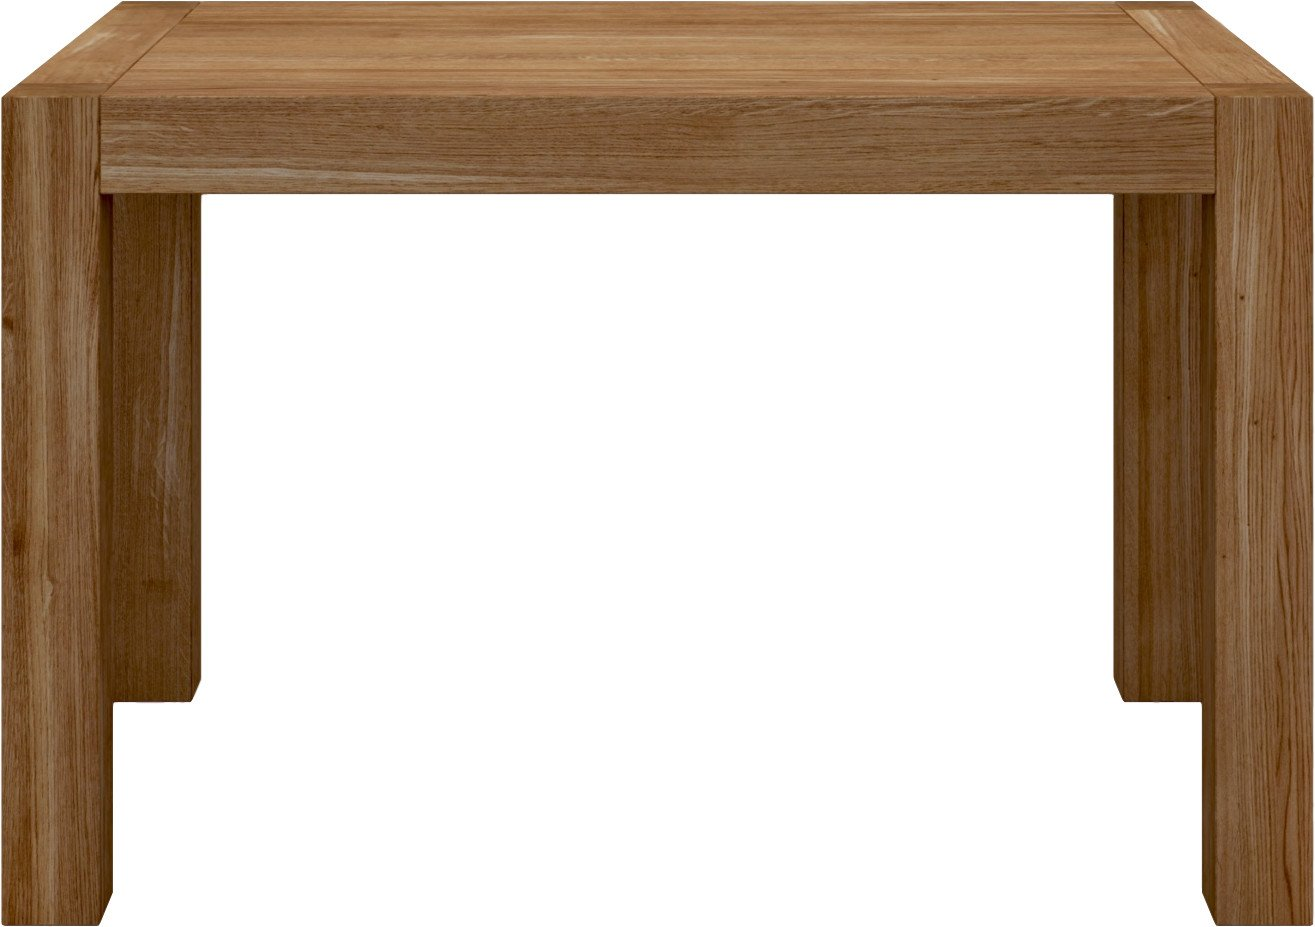 Blox Table Tobacco 120x80, Miloni